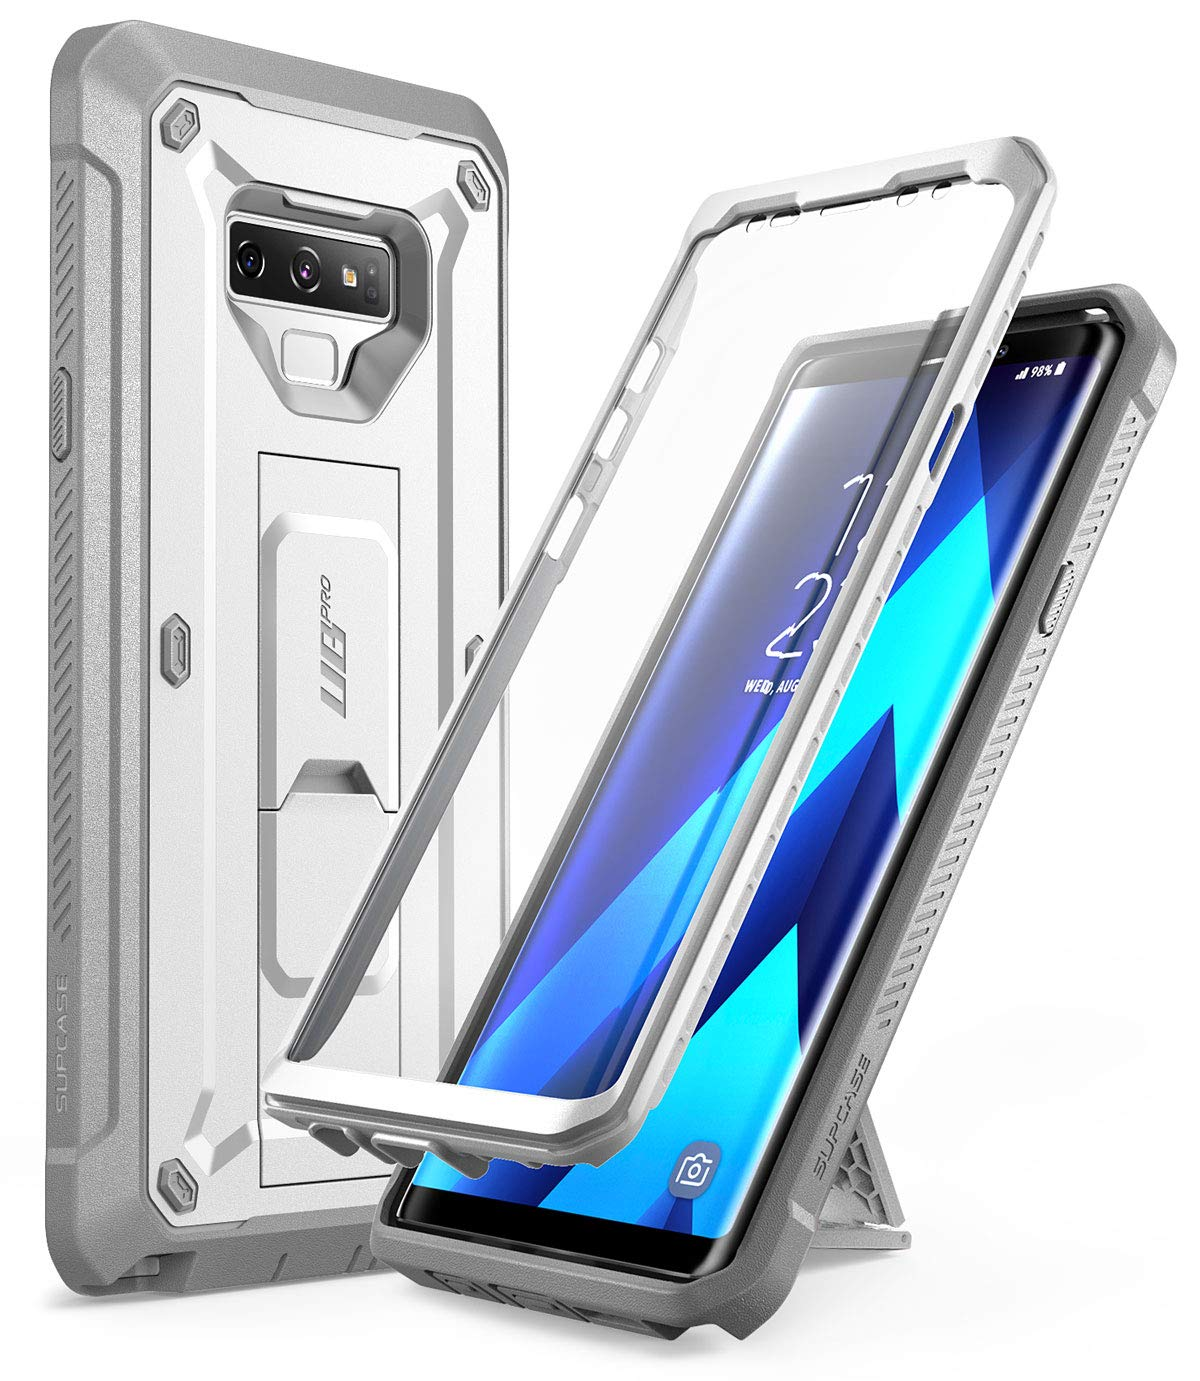 SUPCASE Full-Body Rugged Holster Case with Built-in Screen Protector /& Kickstand for Galaxy Note 9 Unicorn Beetle Pro Series Black 2018 Release Samsung Galaxy Note 9 Case